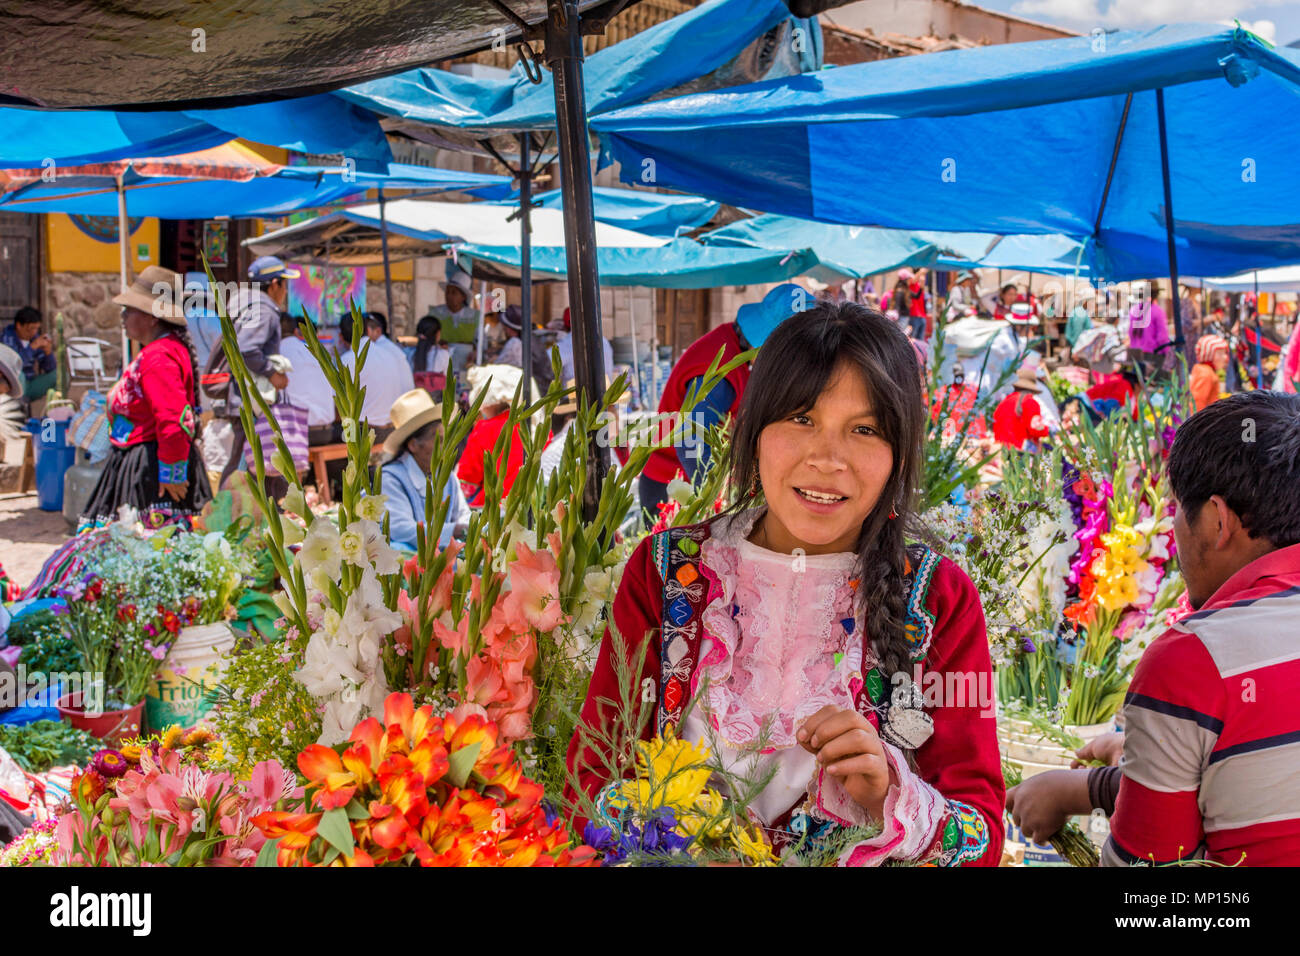 Pisac Peru Market, young Peruvian girl selling flowers at Pisac Market, Sacred Valley Peru, Cusco Region. Stock Photo